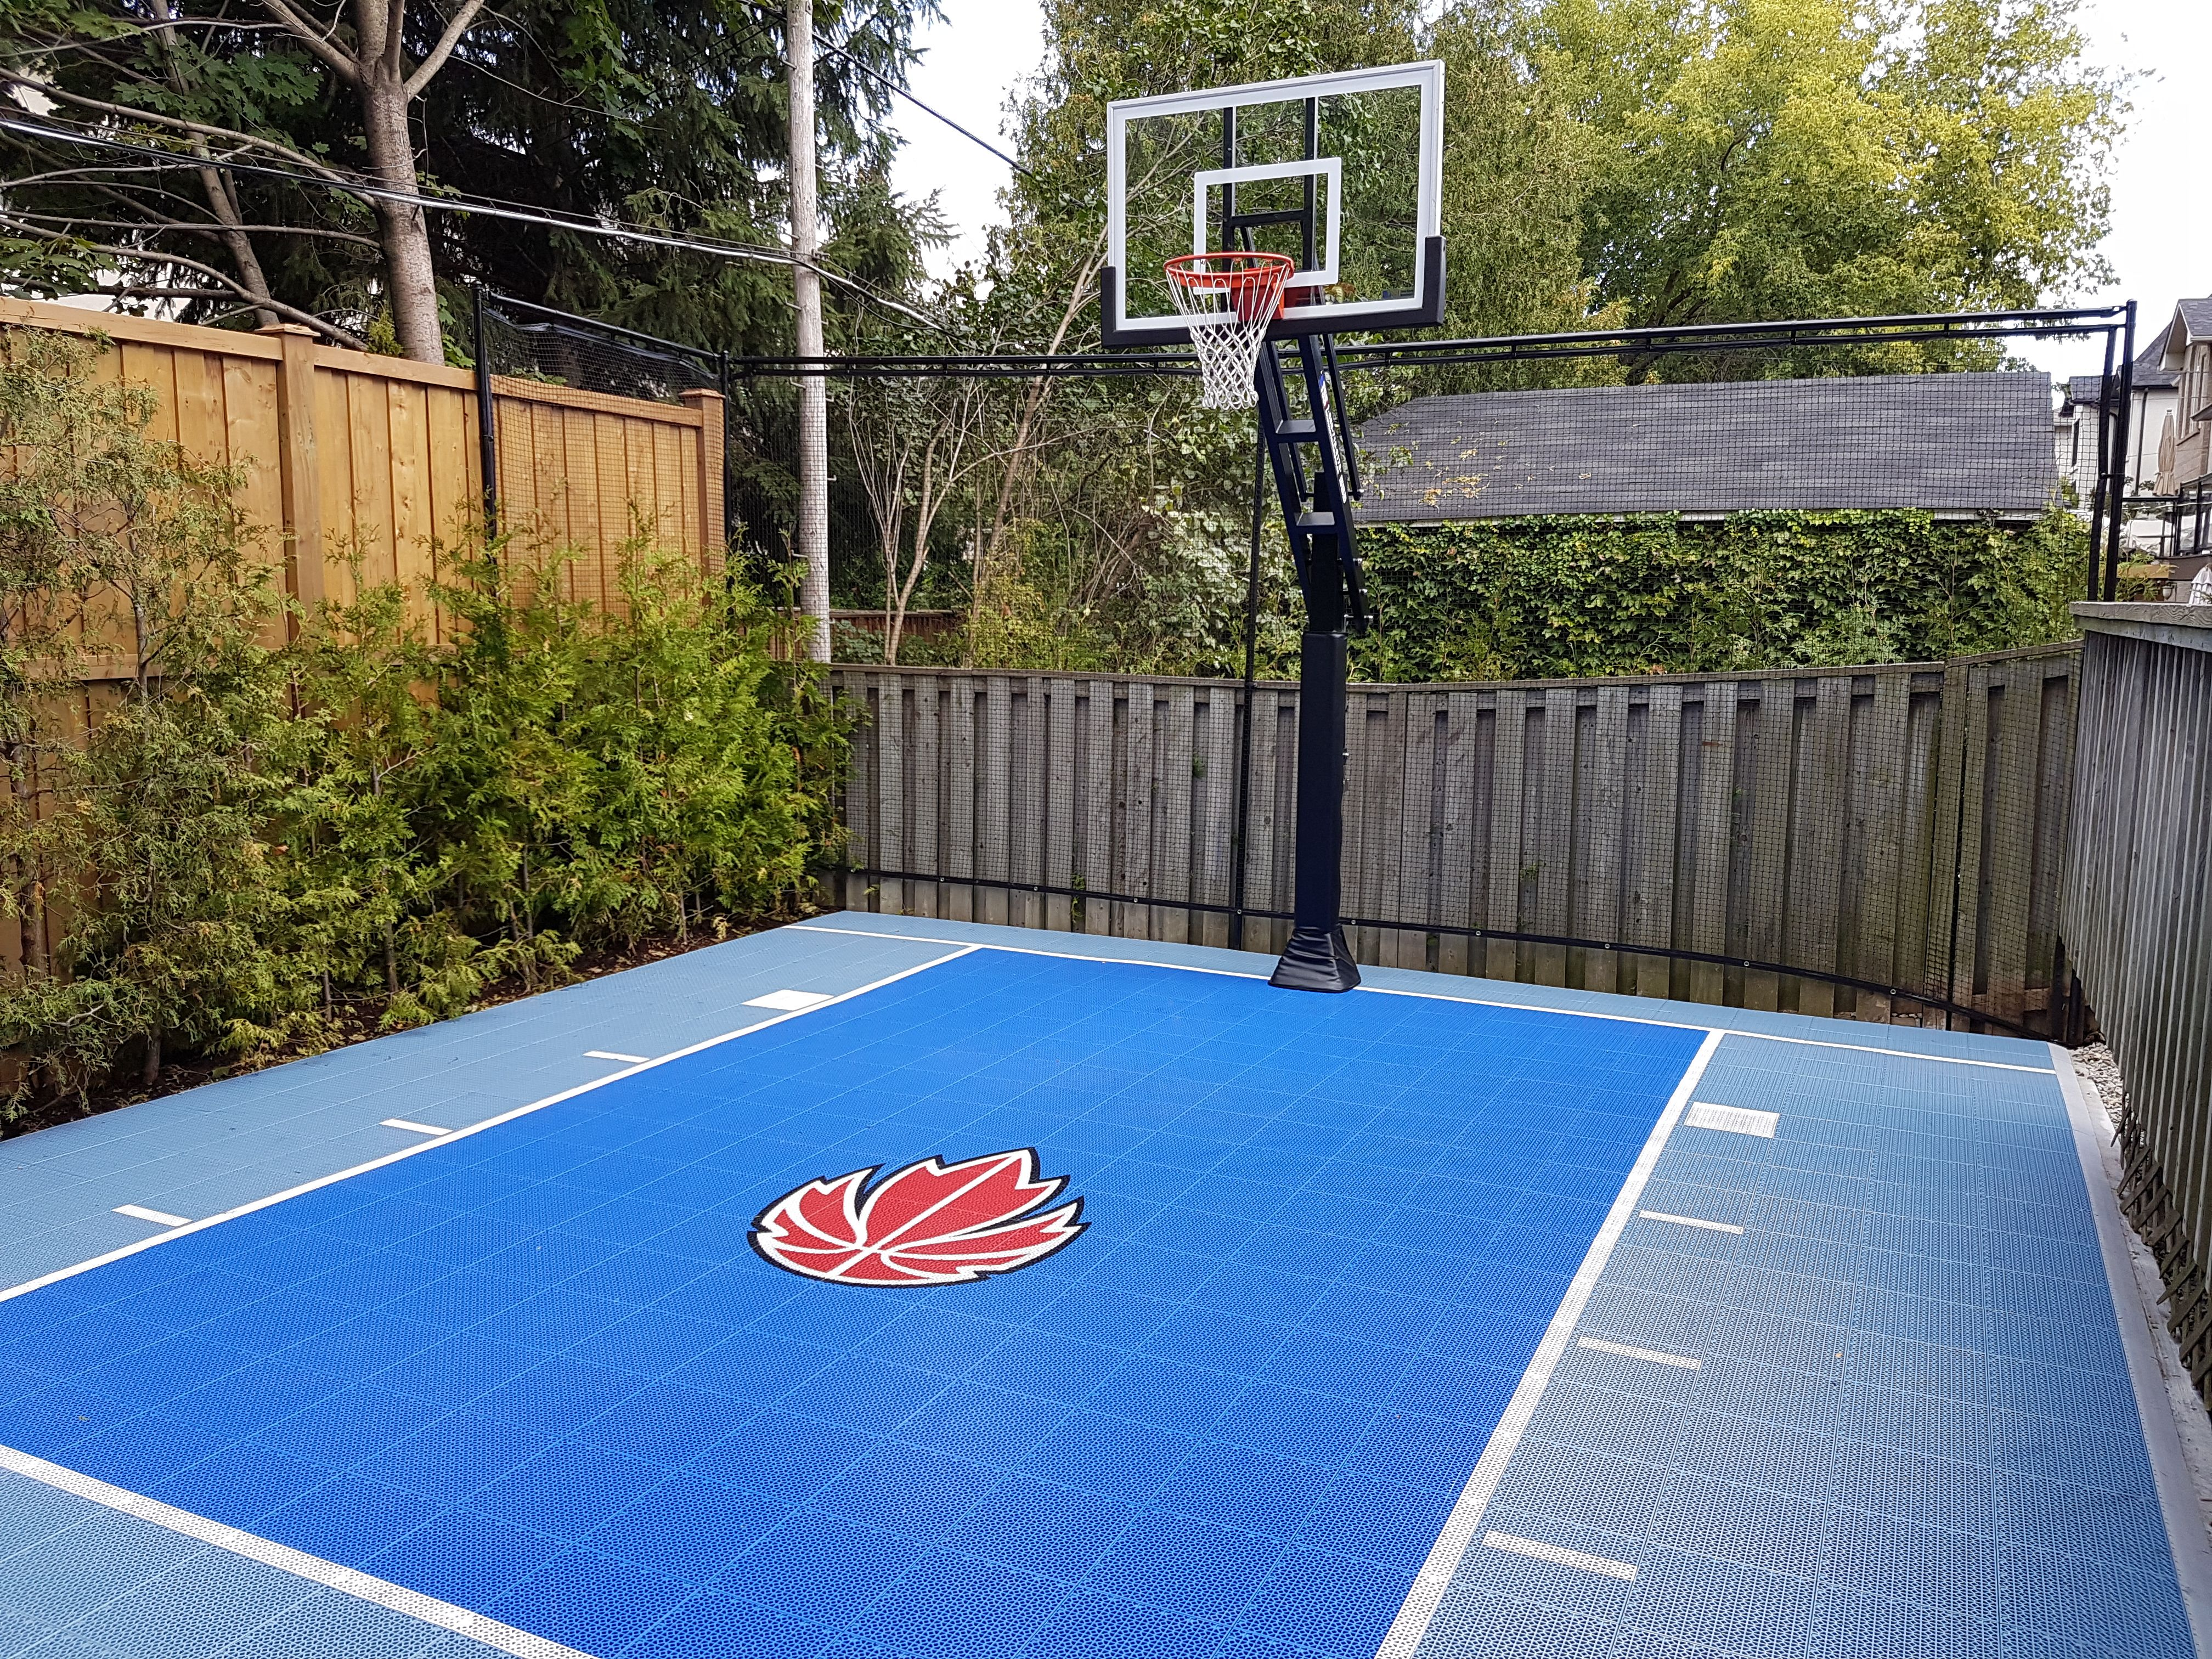 20 X 28 Backyard Court With Our Bounceback Shocktower Court Surface From Snapsports Basketball Court Backyard Backyard Court Backyard Basketball